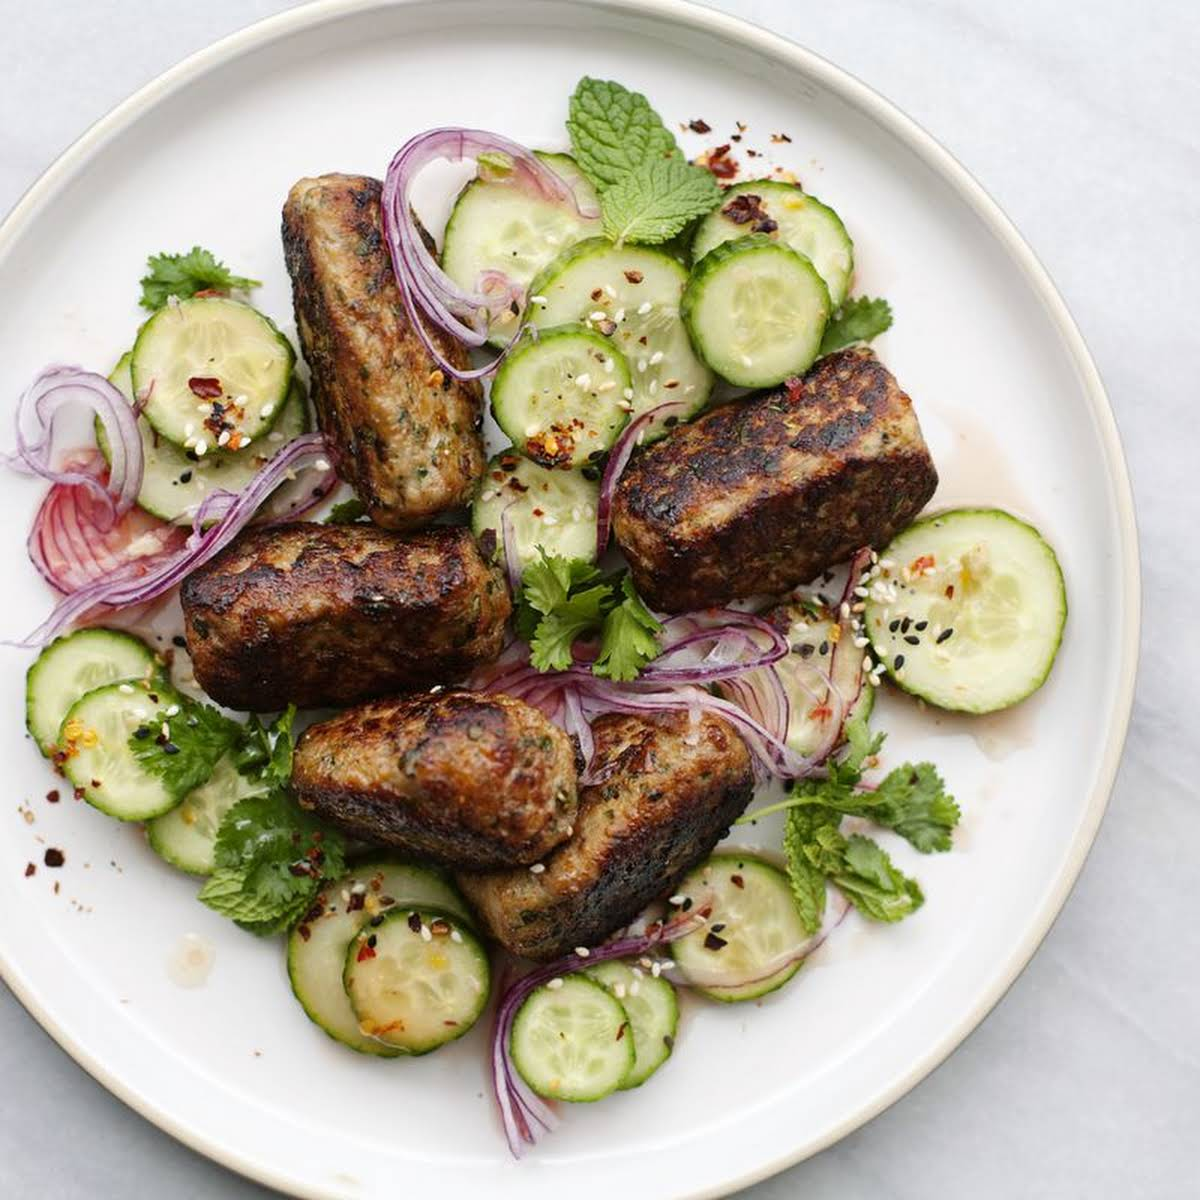 Herbed Chicken  like Nuoc Cham Cucumbers